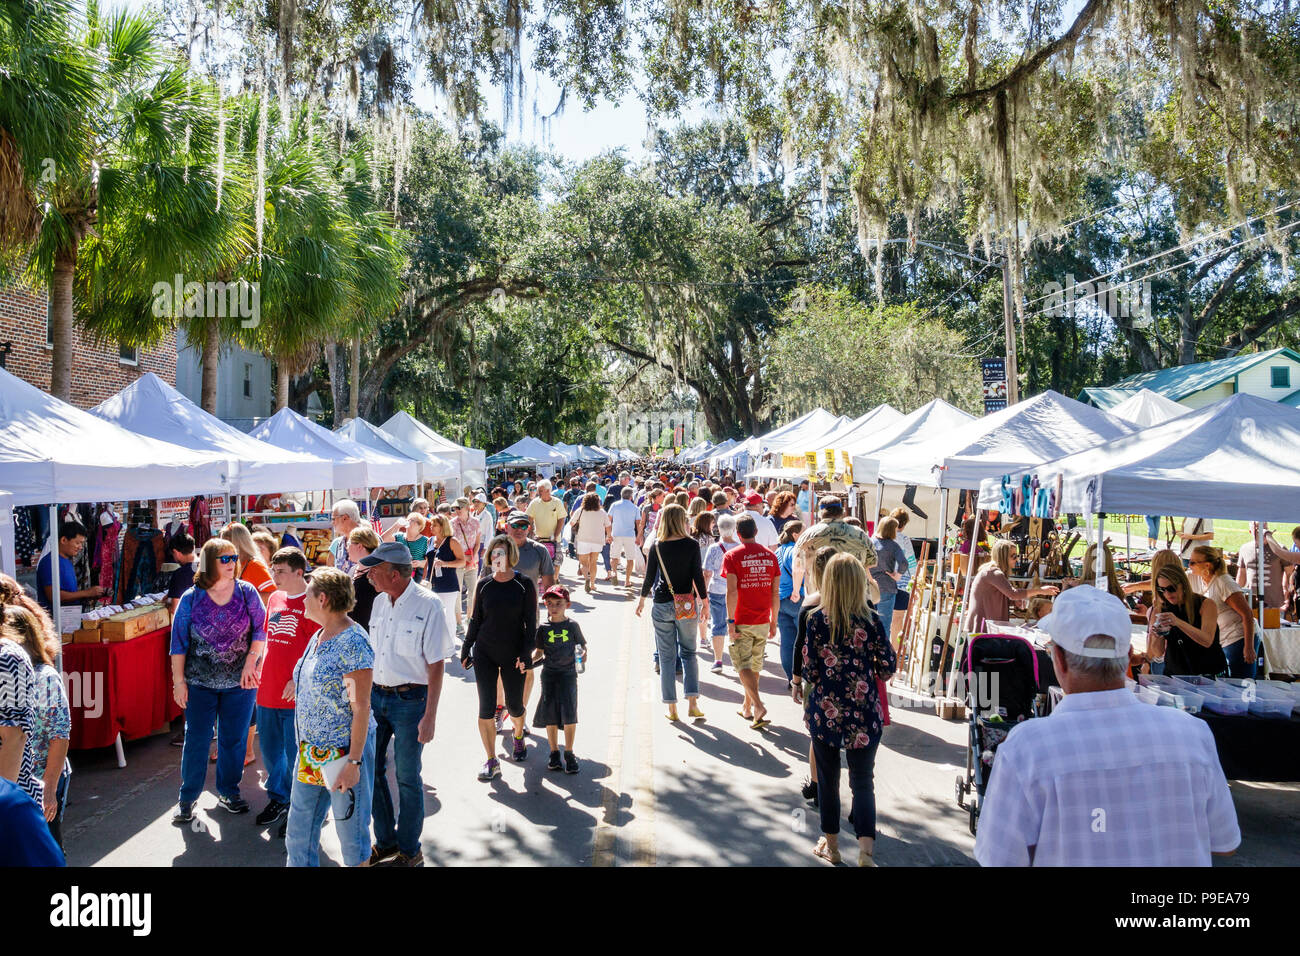 Florida Micanopy Fall Harvest Festival annual small town community event booths stalls vendors buying selling crowd strolling families - Stock Image